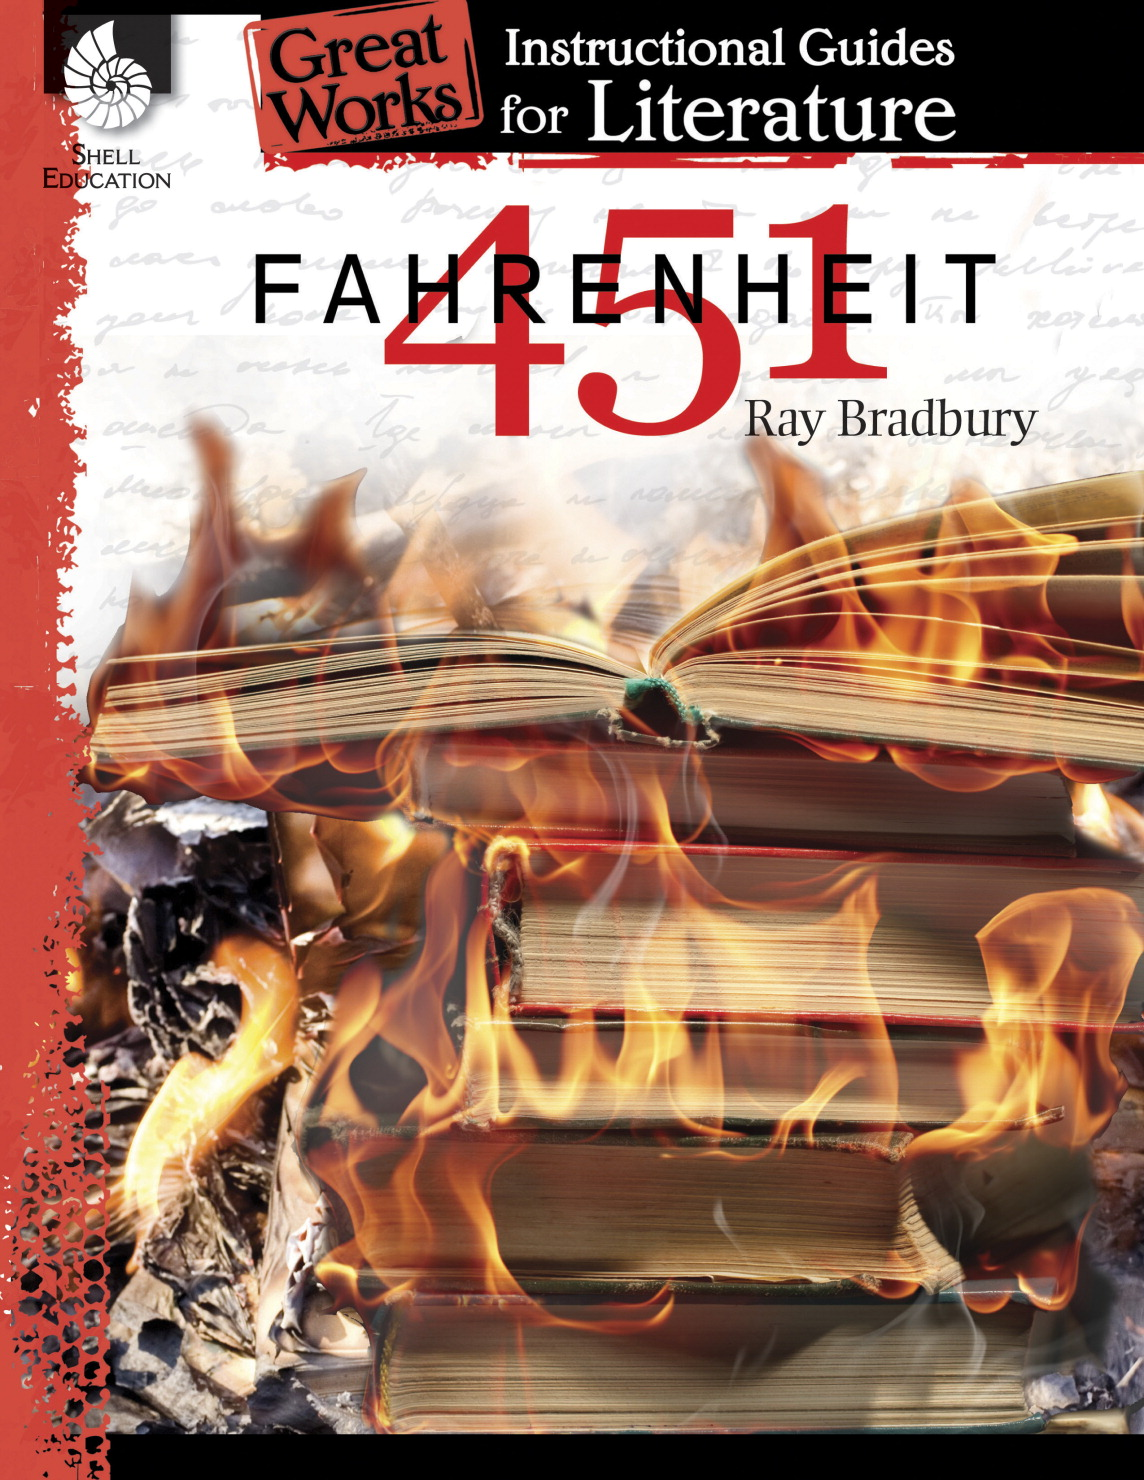 farenheit 451 major works Fahrenheit 451 allusions poster in fahrenheit 451, bradbury alludes (makes allusions to) many different writers and thinkers in describing the travelers on pages 151-153, he specifically mentions a variety of writers whose works are memorized by the travelers.